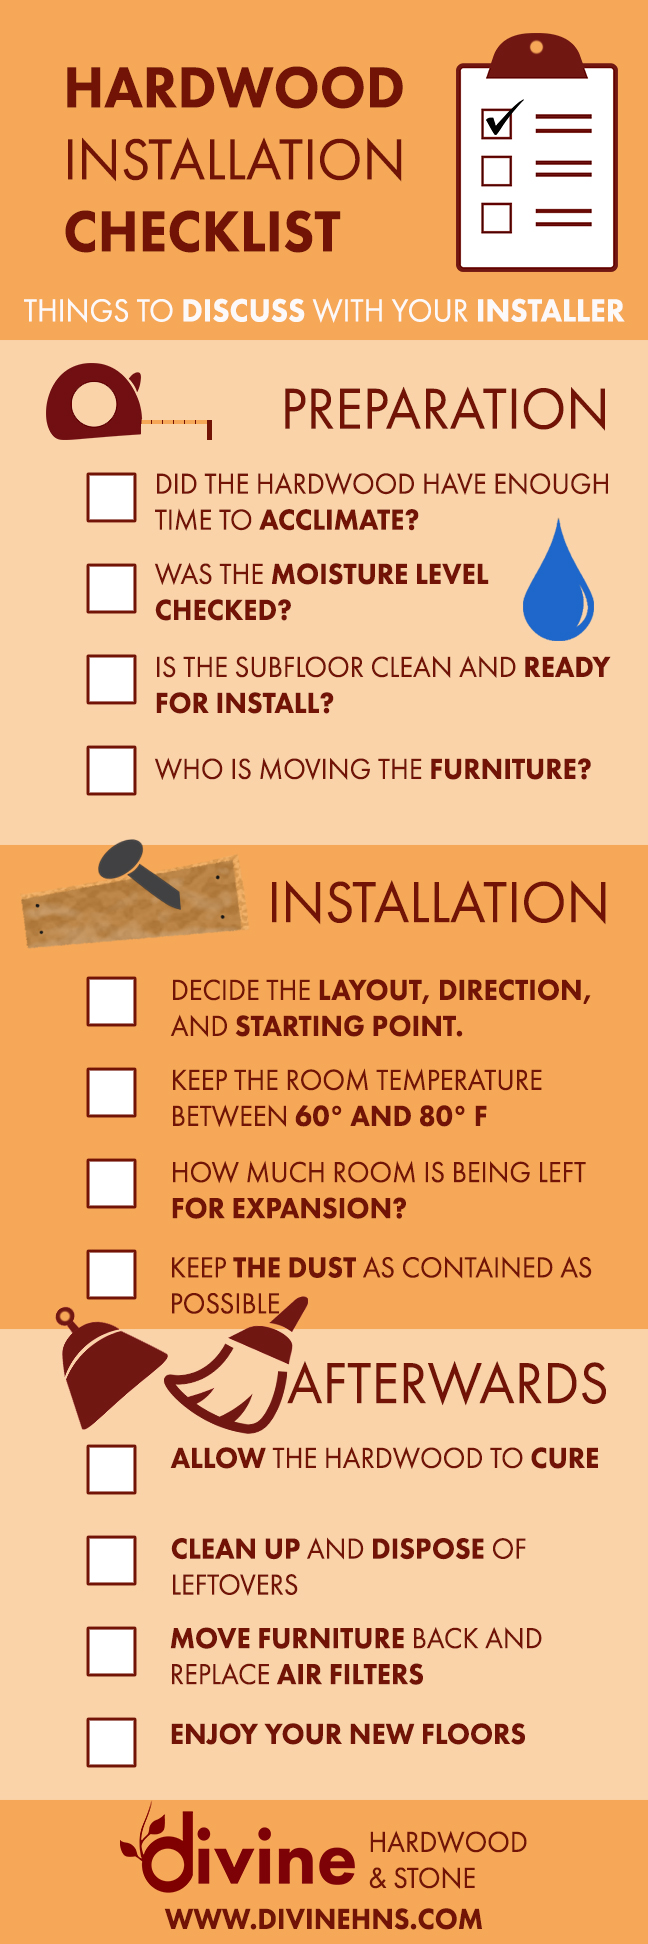 Hardwood Installation Checklist Infographic